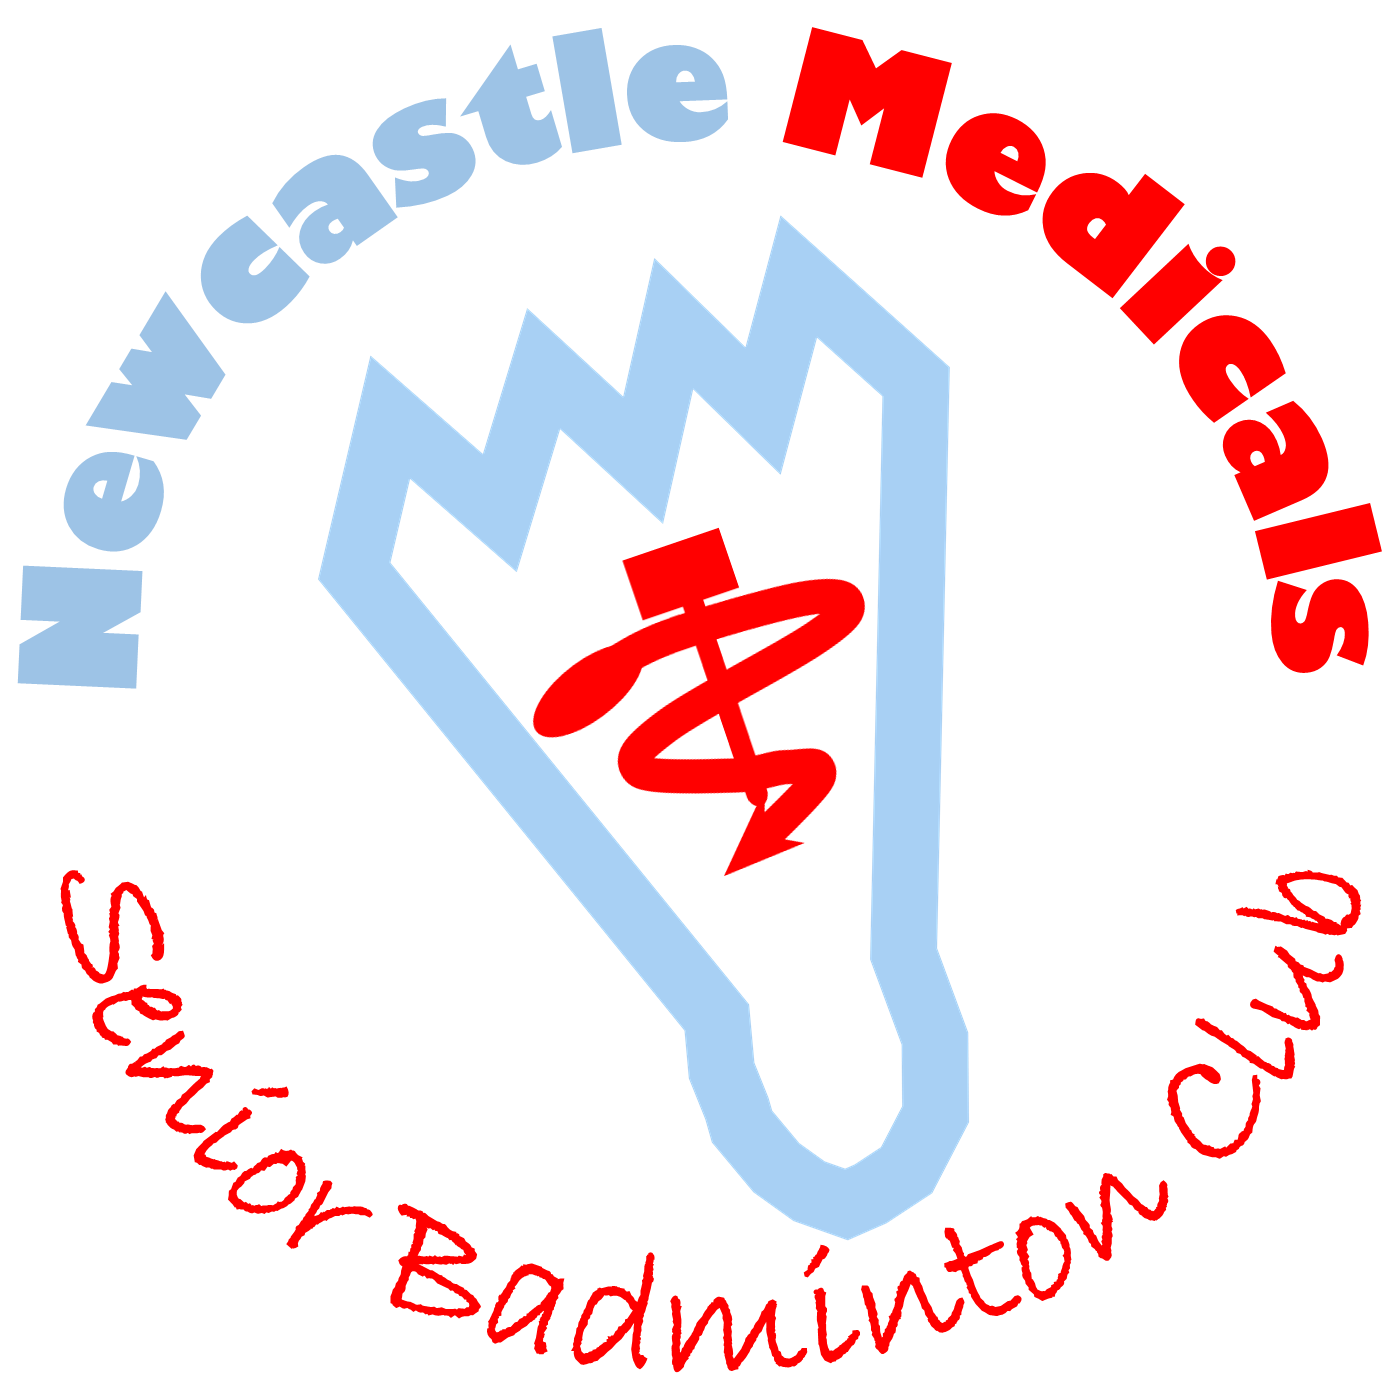 Newcastle Medicals Badminton Club